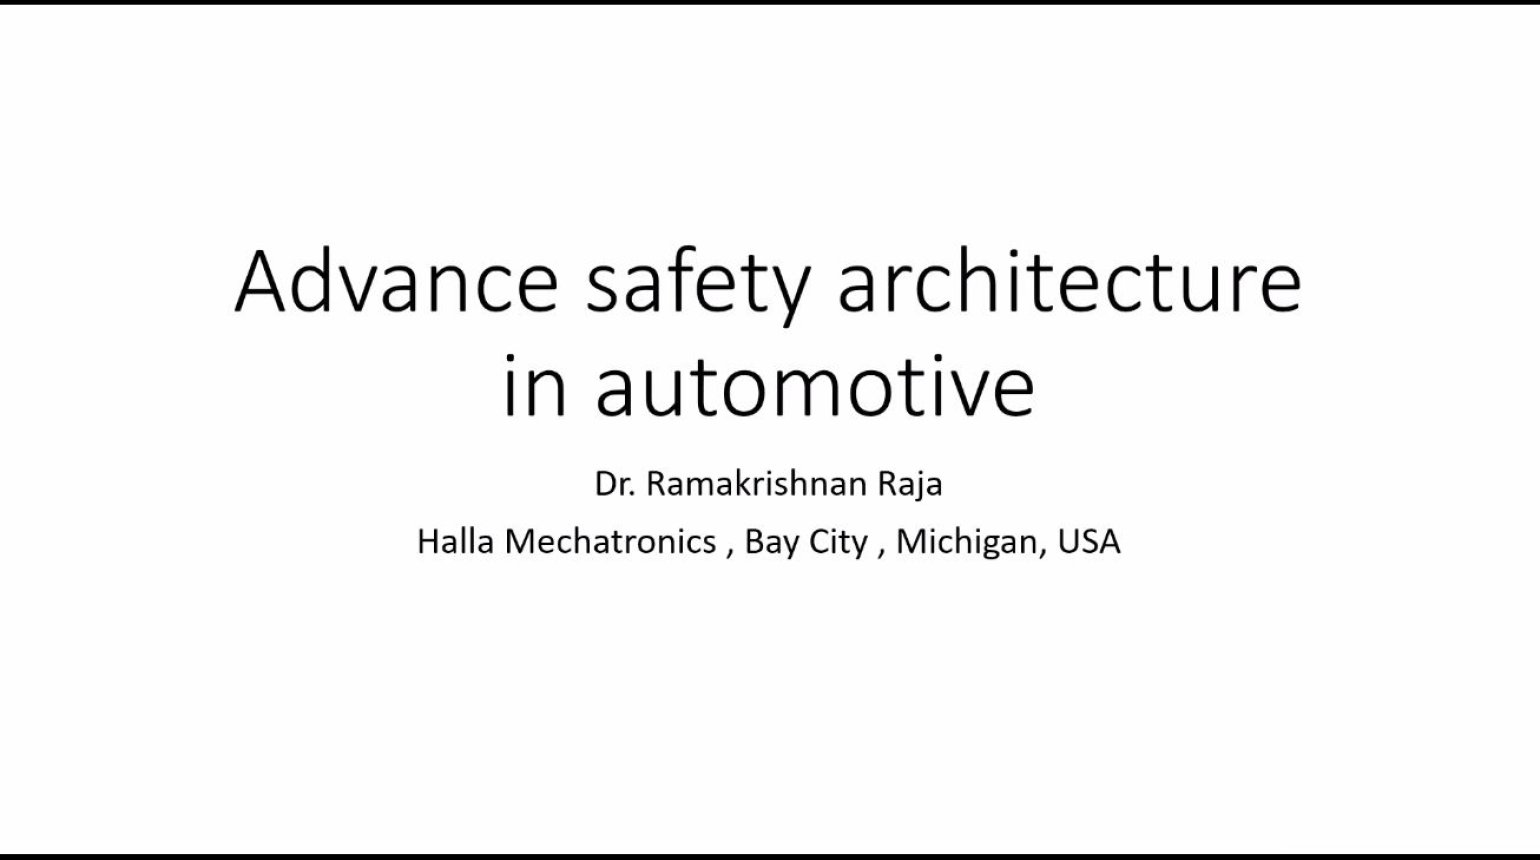 Advanced Safety Architecture for Automotive Systems